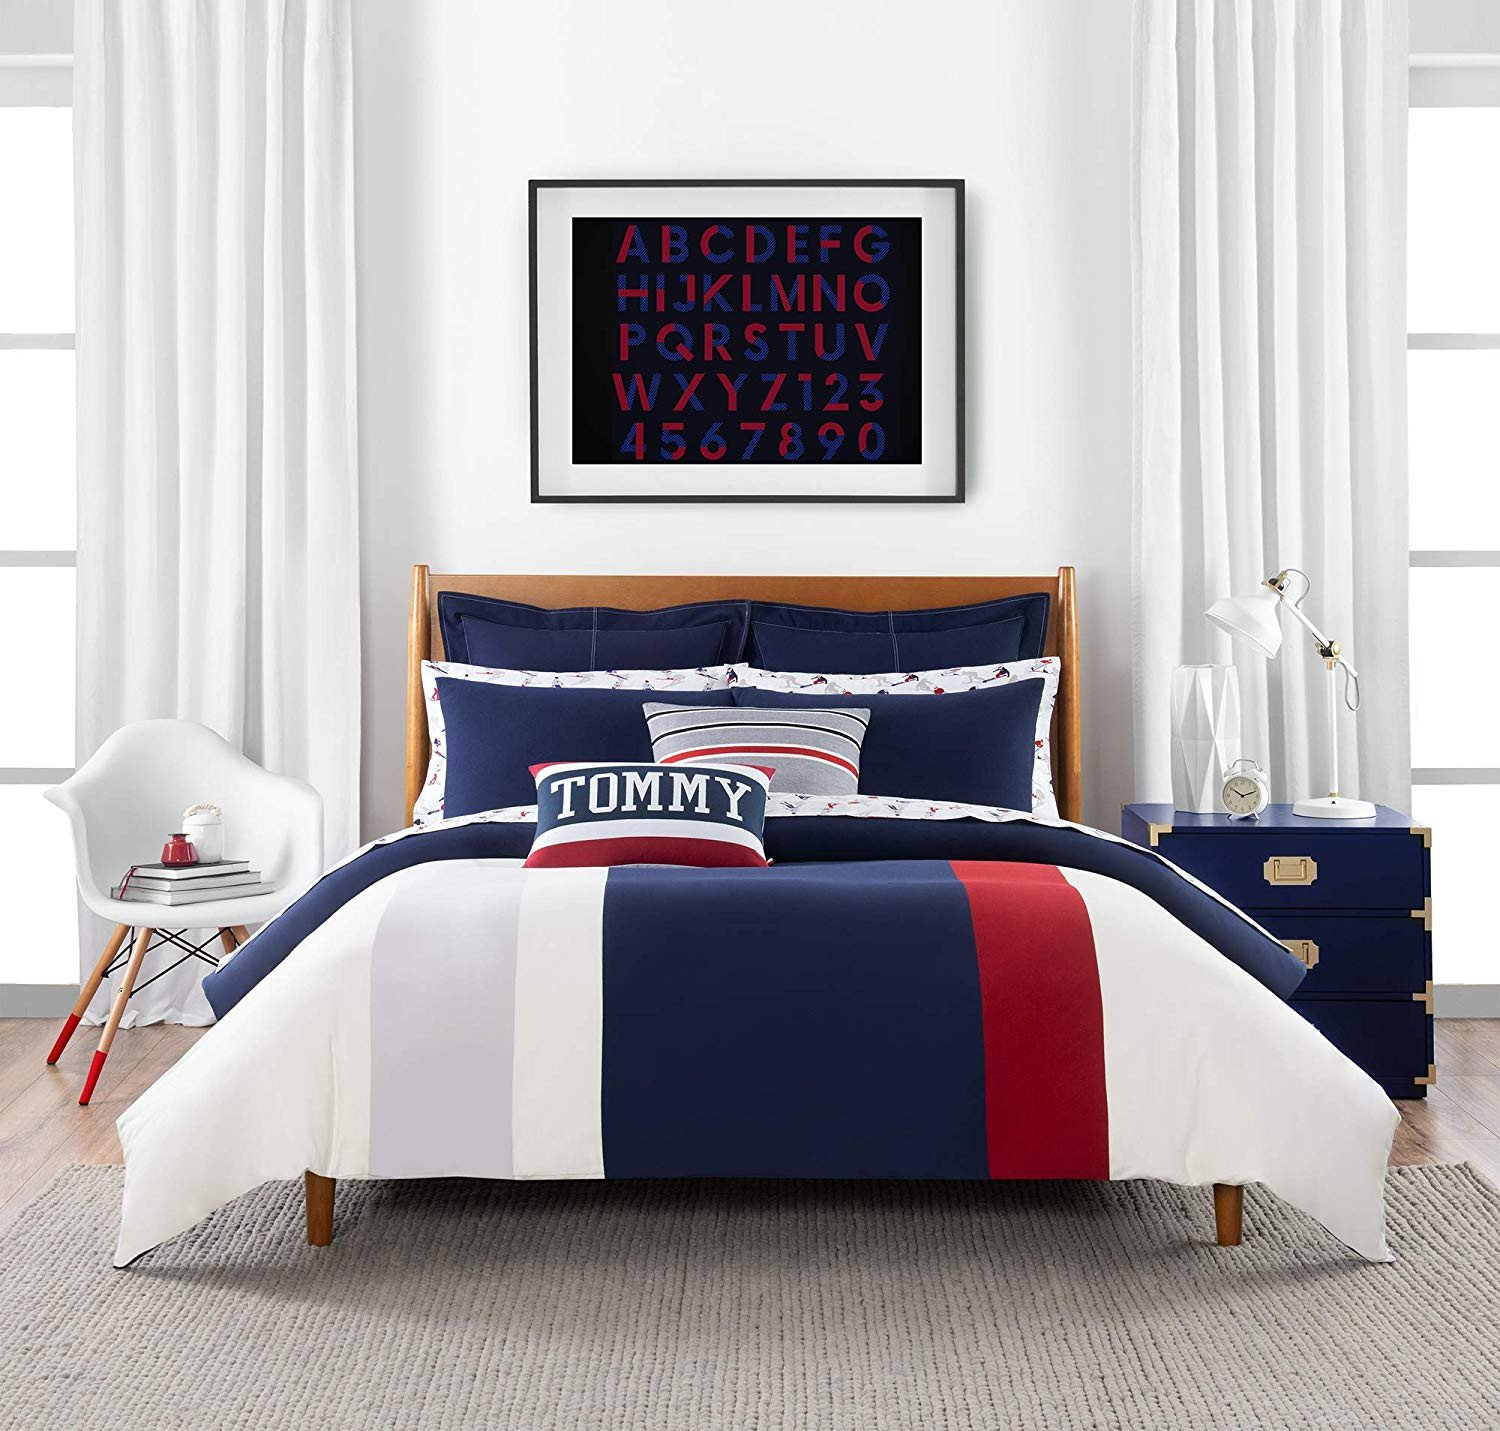 Twin Bedroom Set for Sale Fresh Amazon tommy Hilfiger Clash Of 85 Stripe Bedding